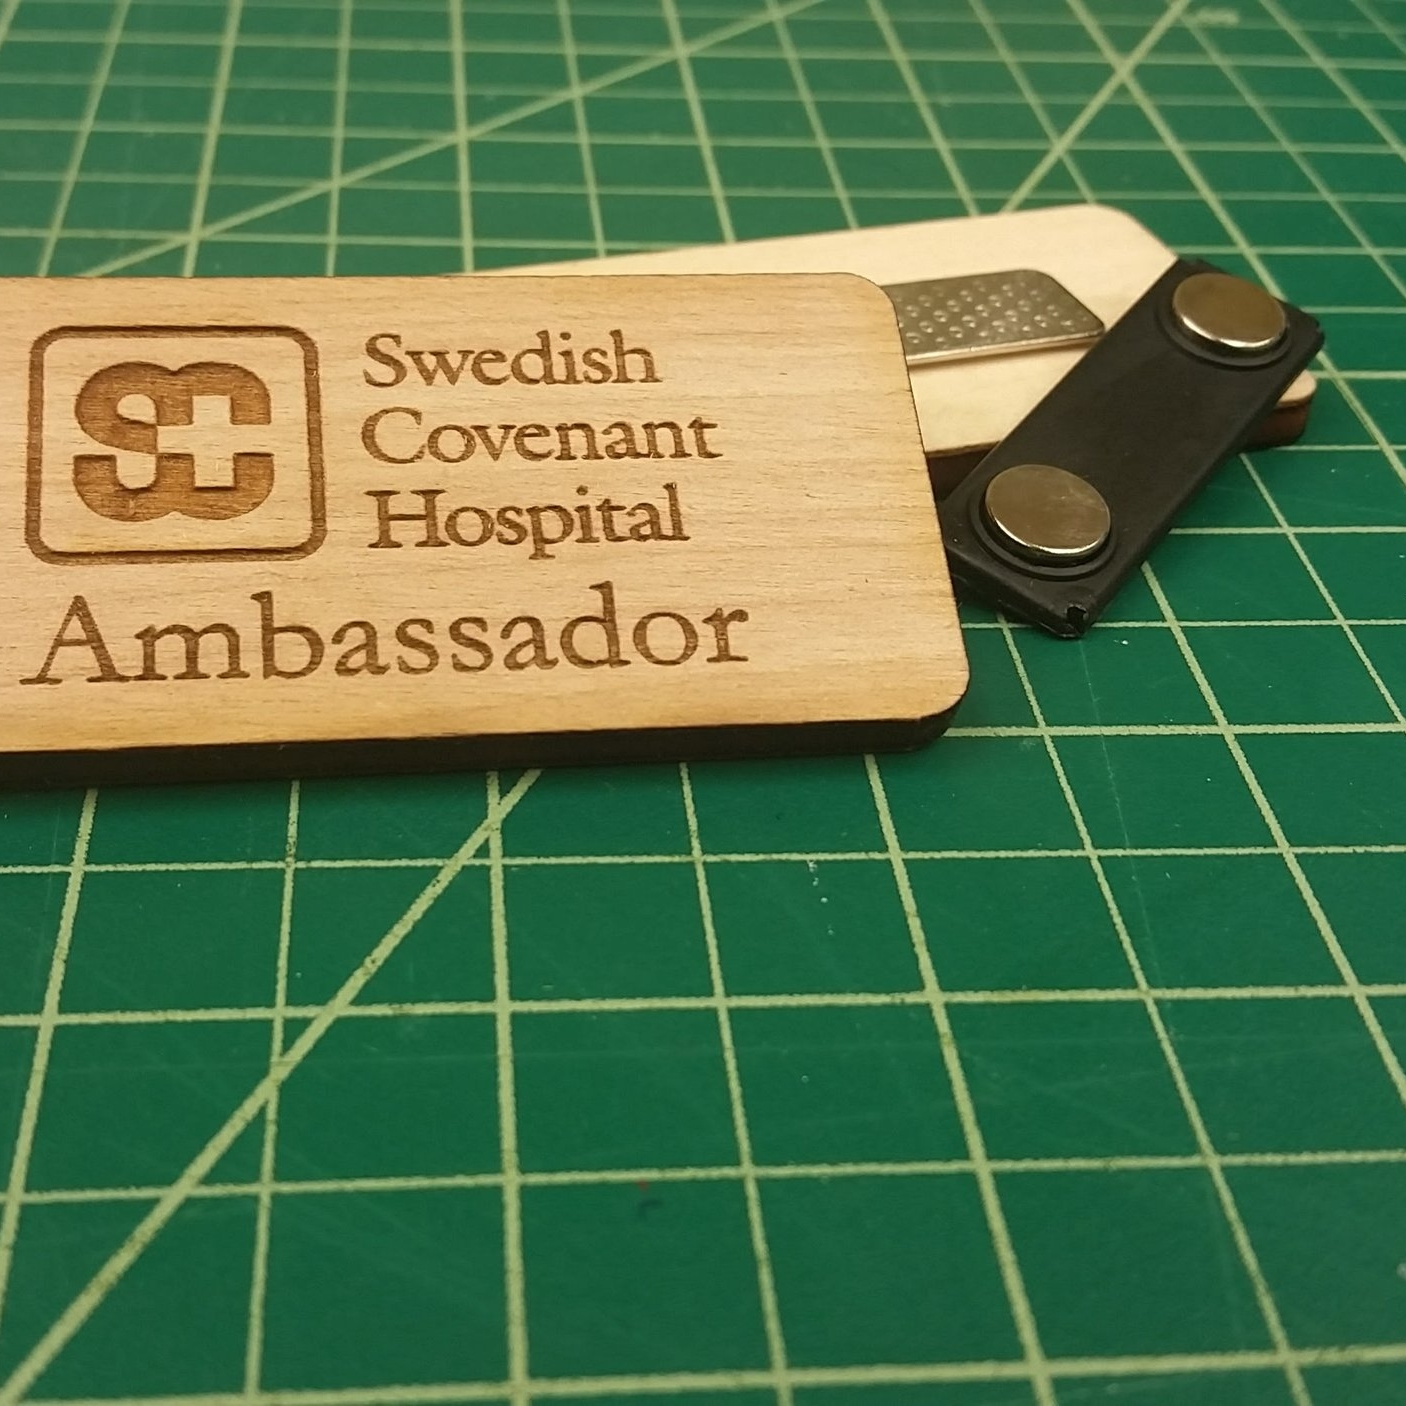 Magnetic-backed name tags